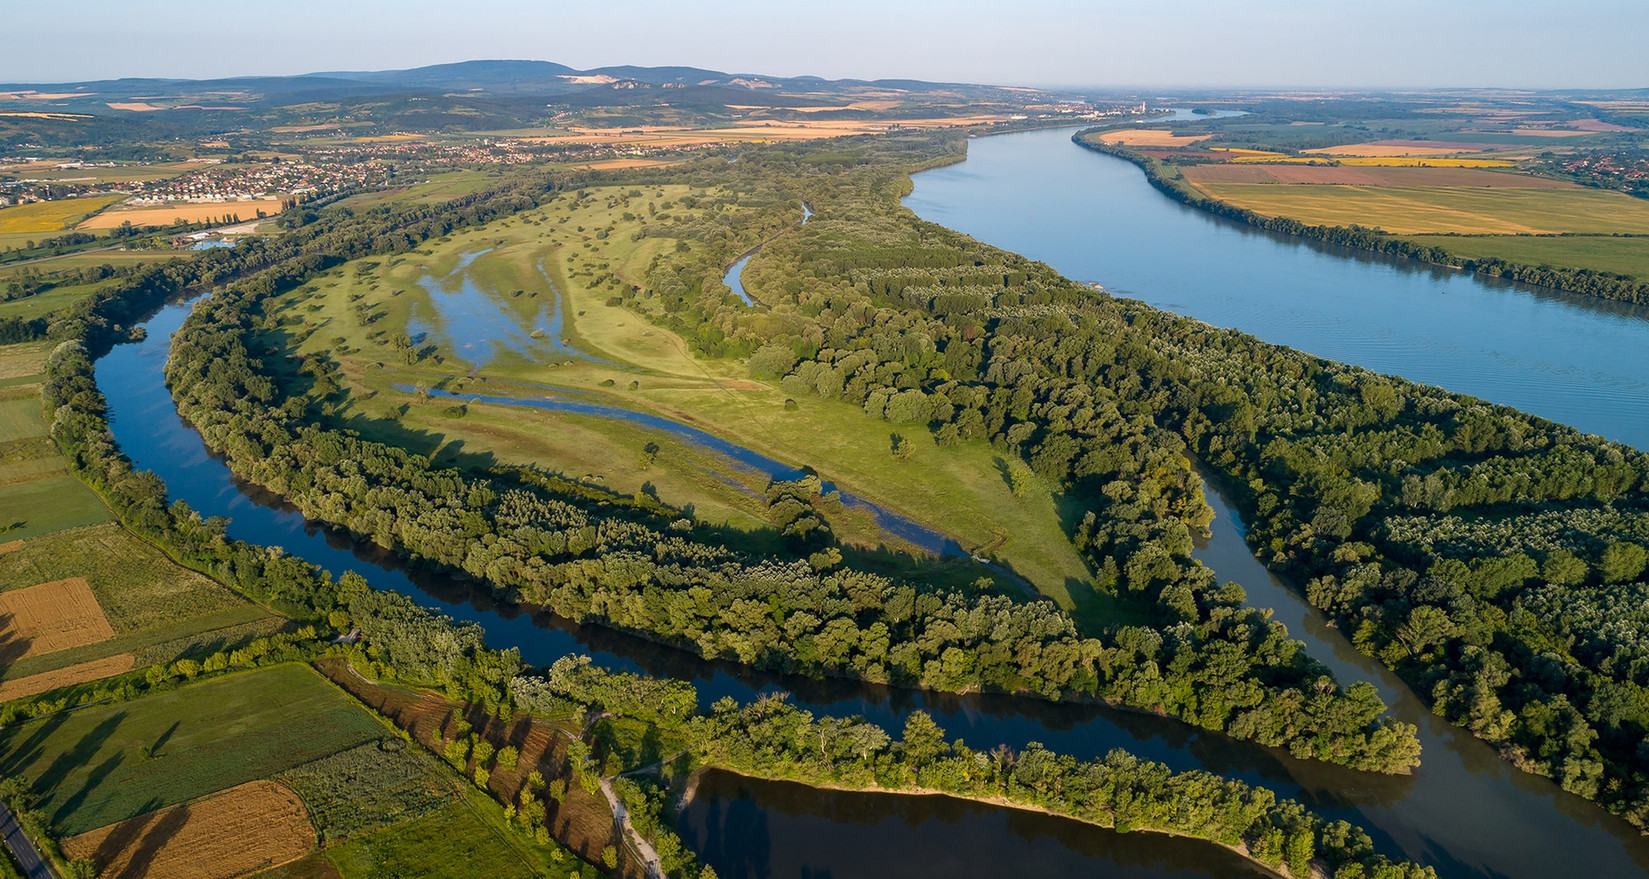 In between, our bike tour follows the course of the Danube river